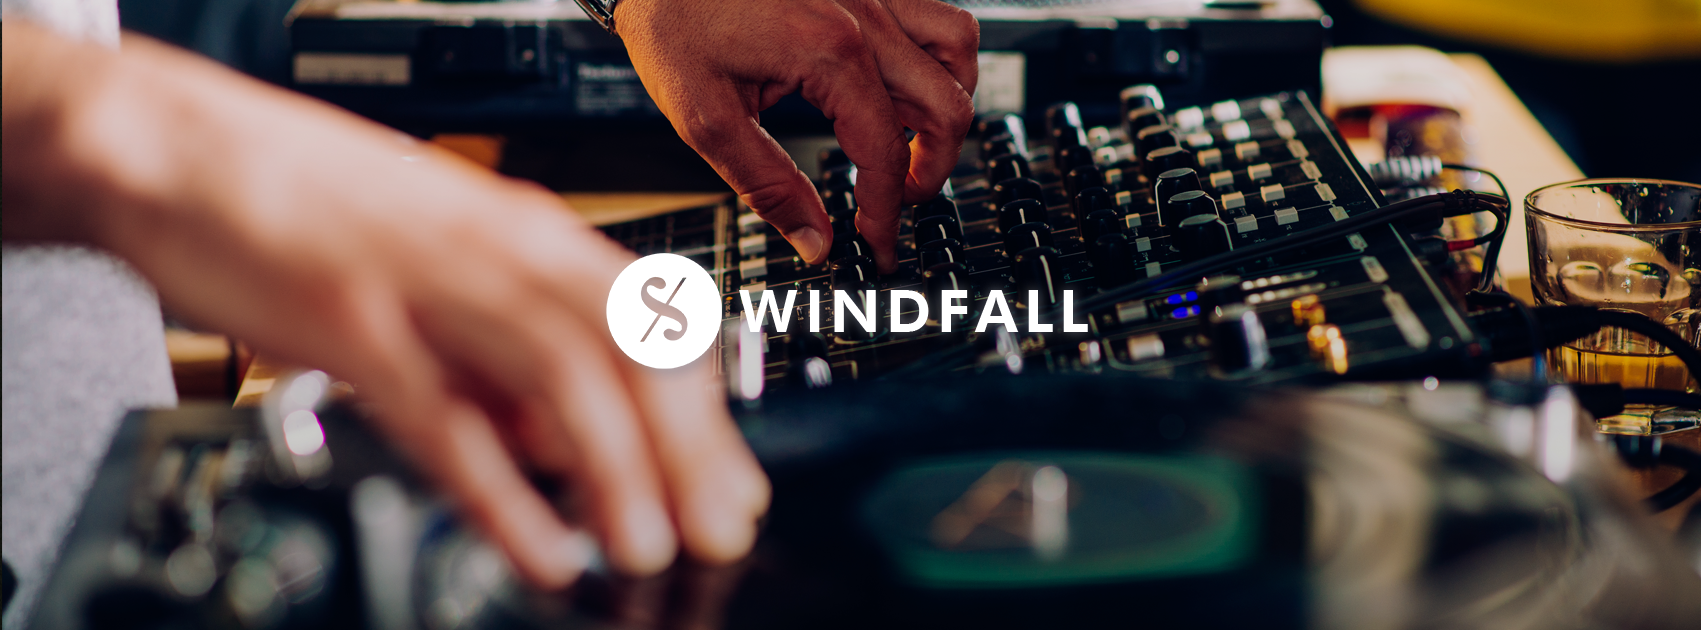 Windfall 1